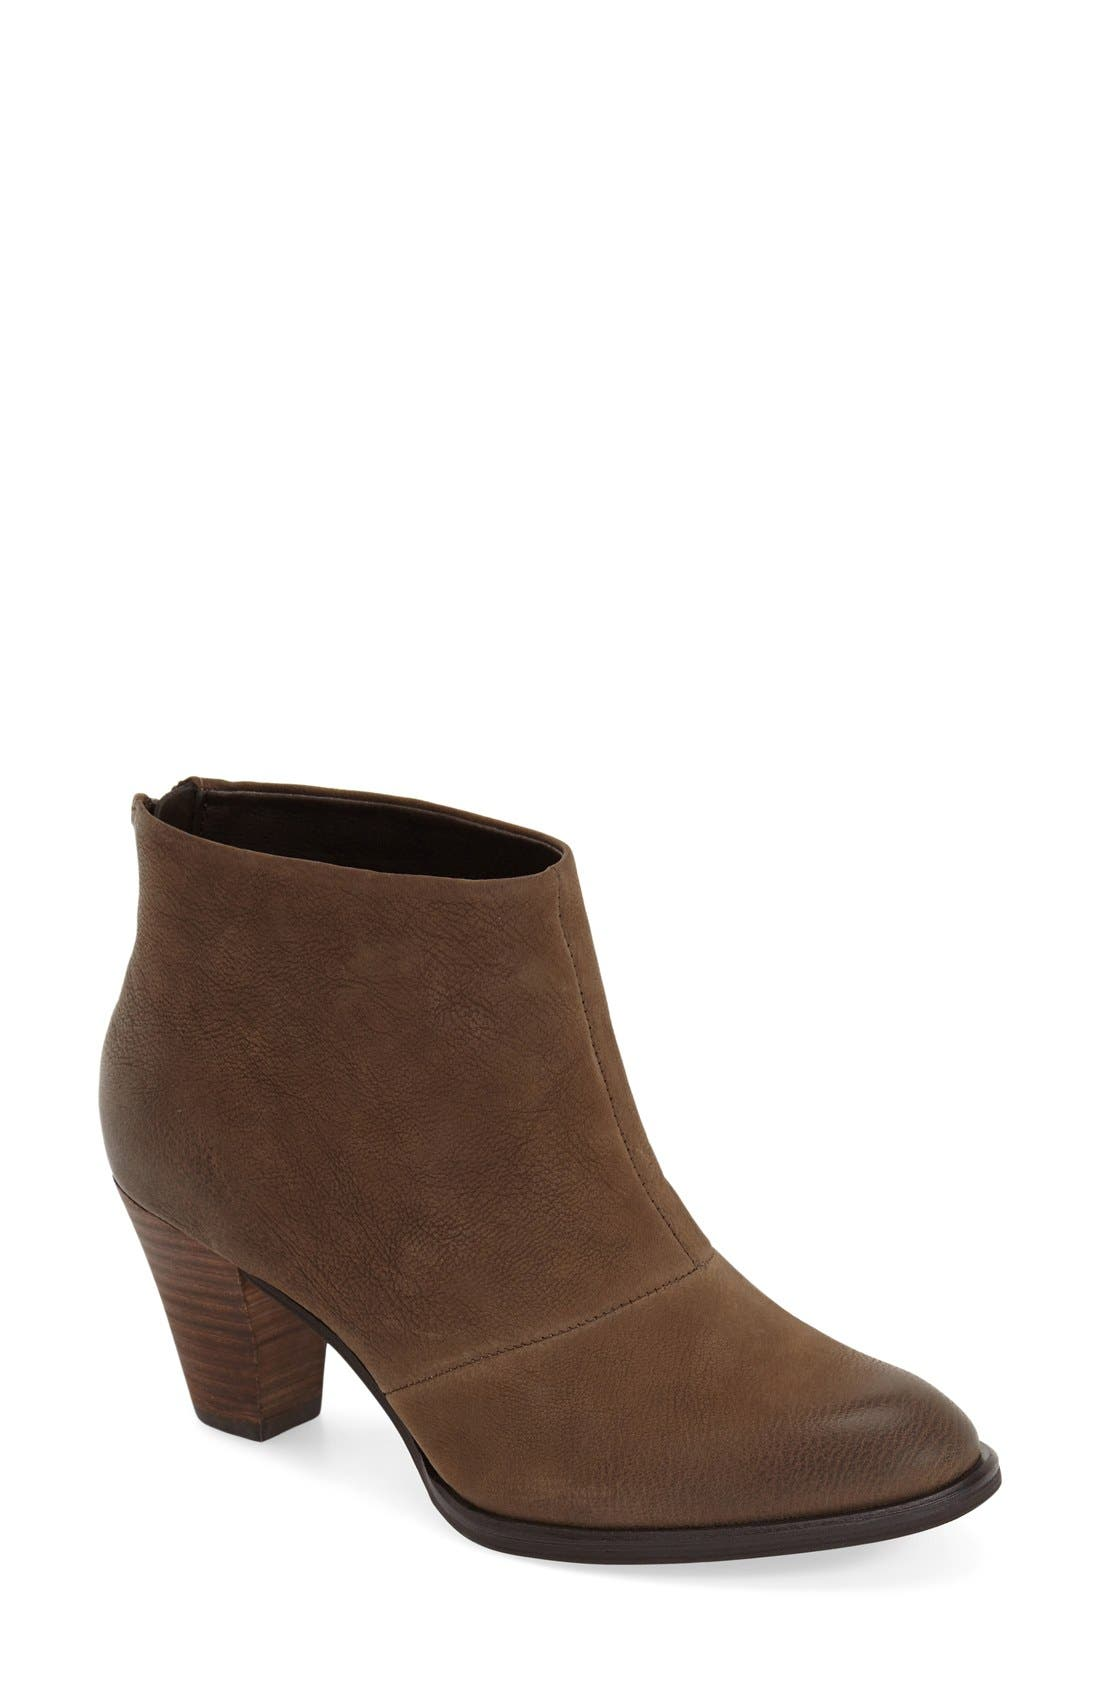 'Devyn' Ankle Bootie,                         Main,                         color, Khaki Leather